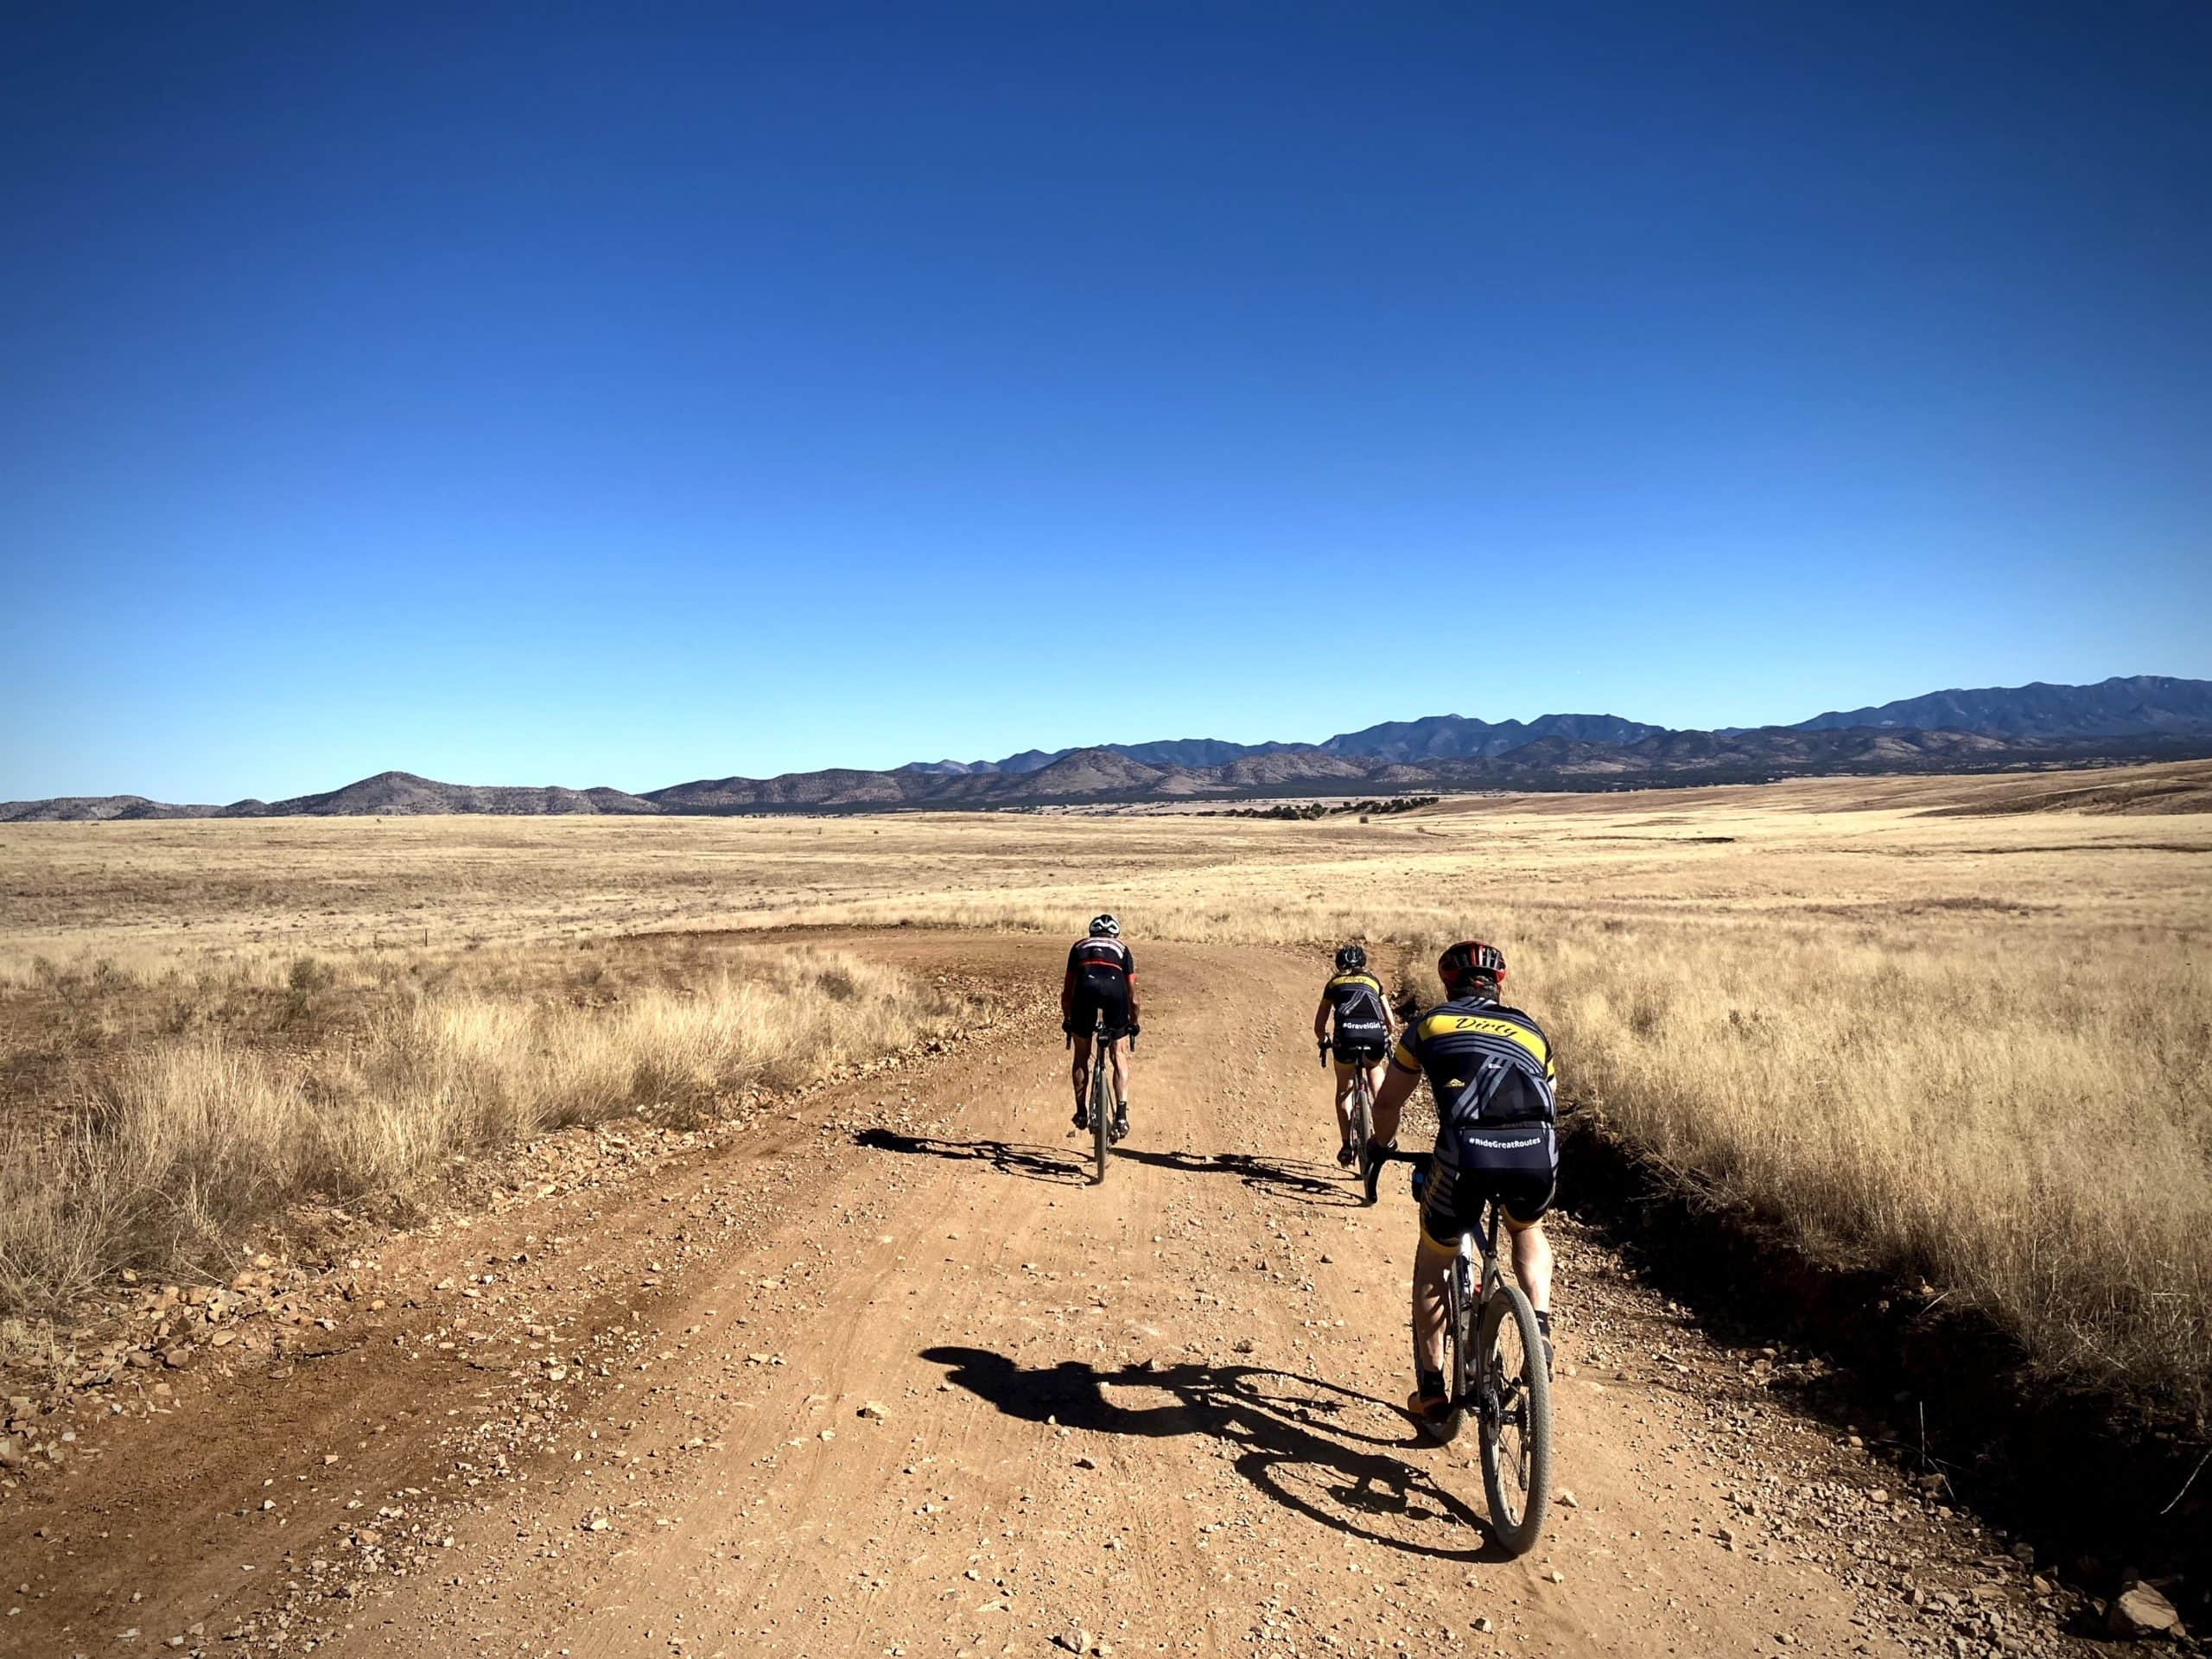 Group of cyclists riding in the San Rafael Valley with golden grasses in the background.